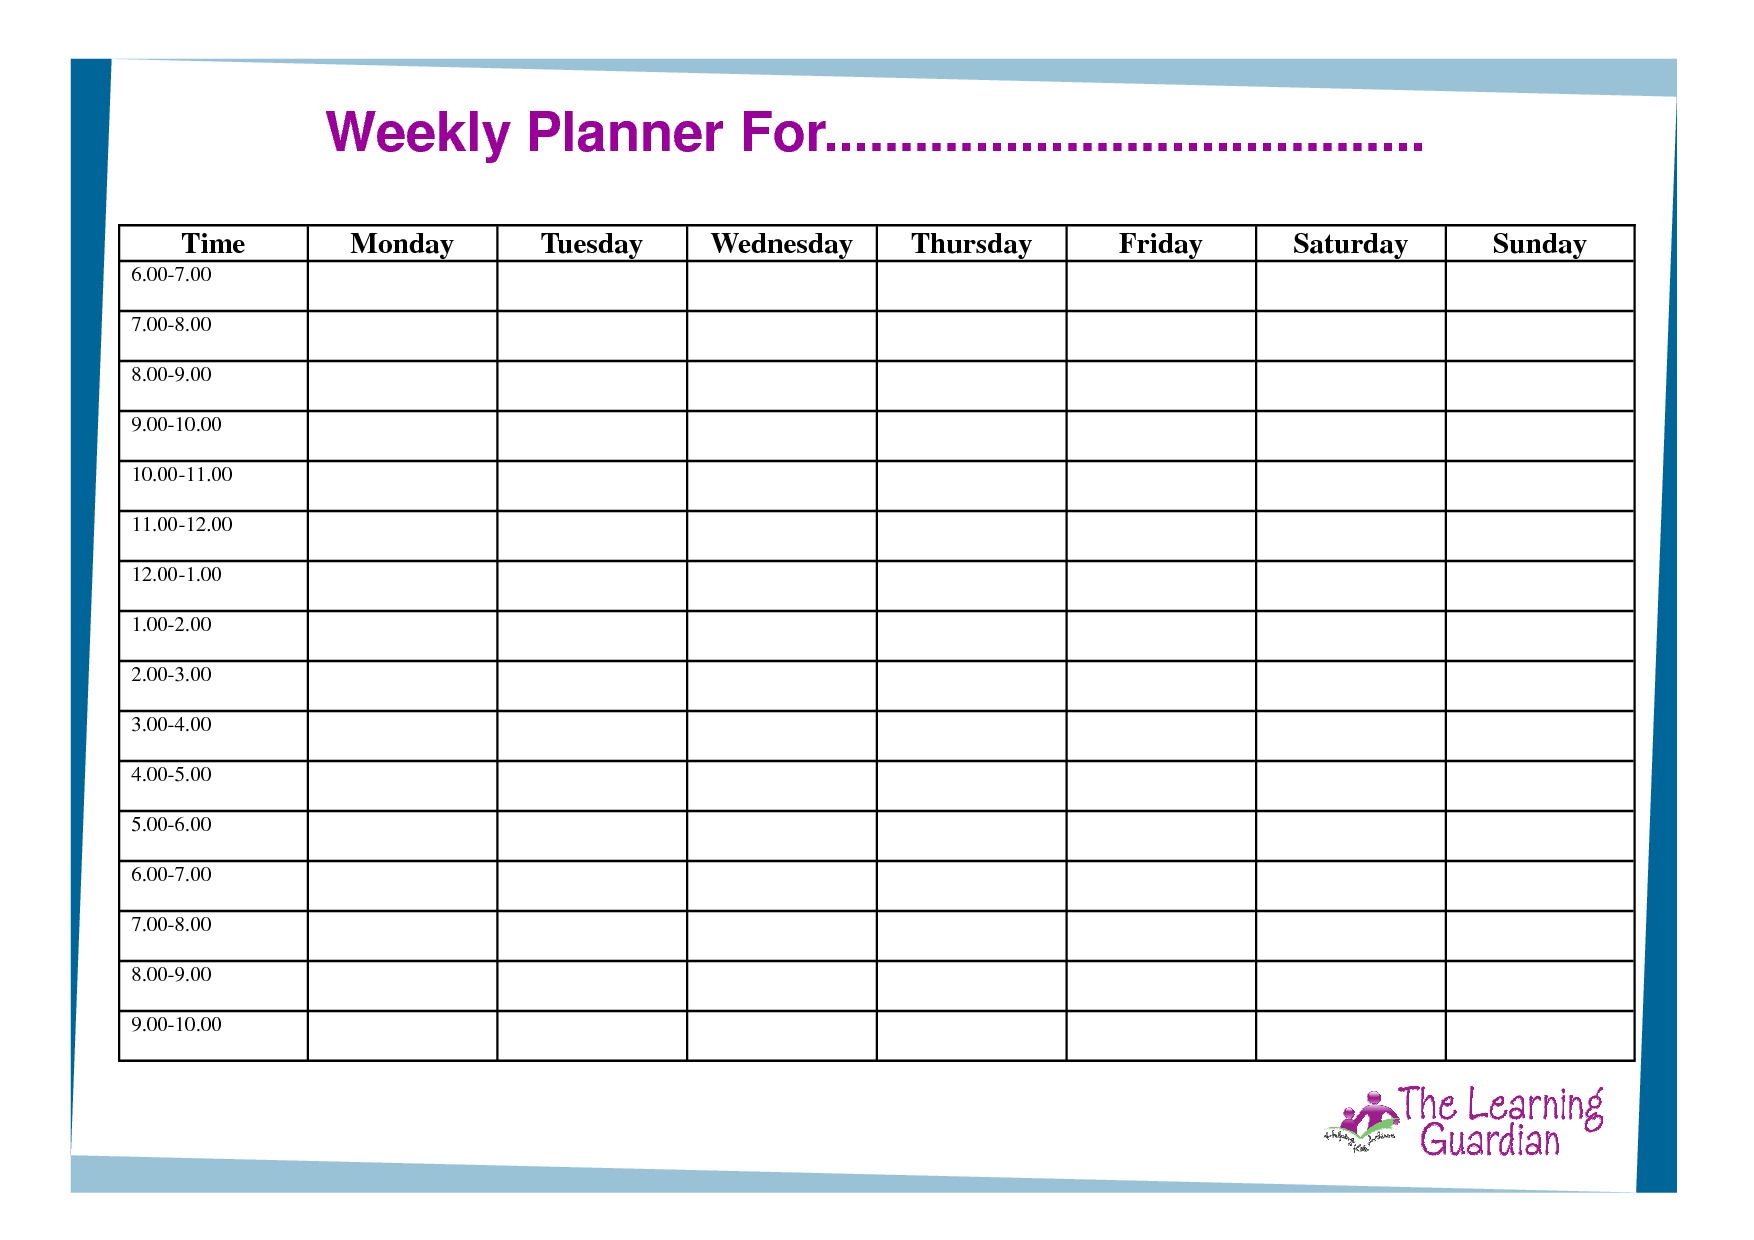 Schedule Template Blank Calendar With Times Daily Time Slots Day pertaining to Week Schedule Template With Times